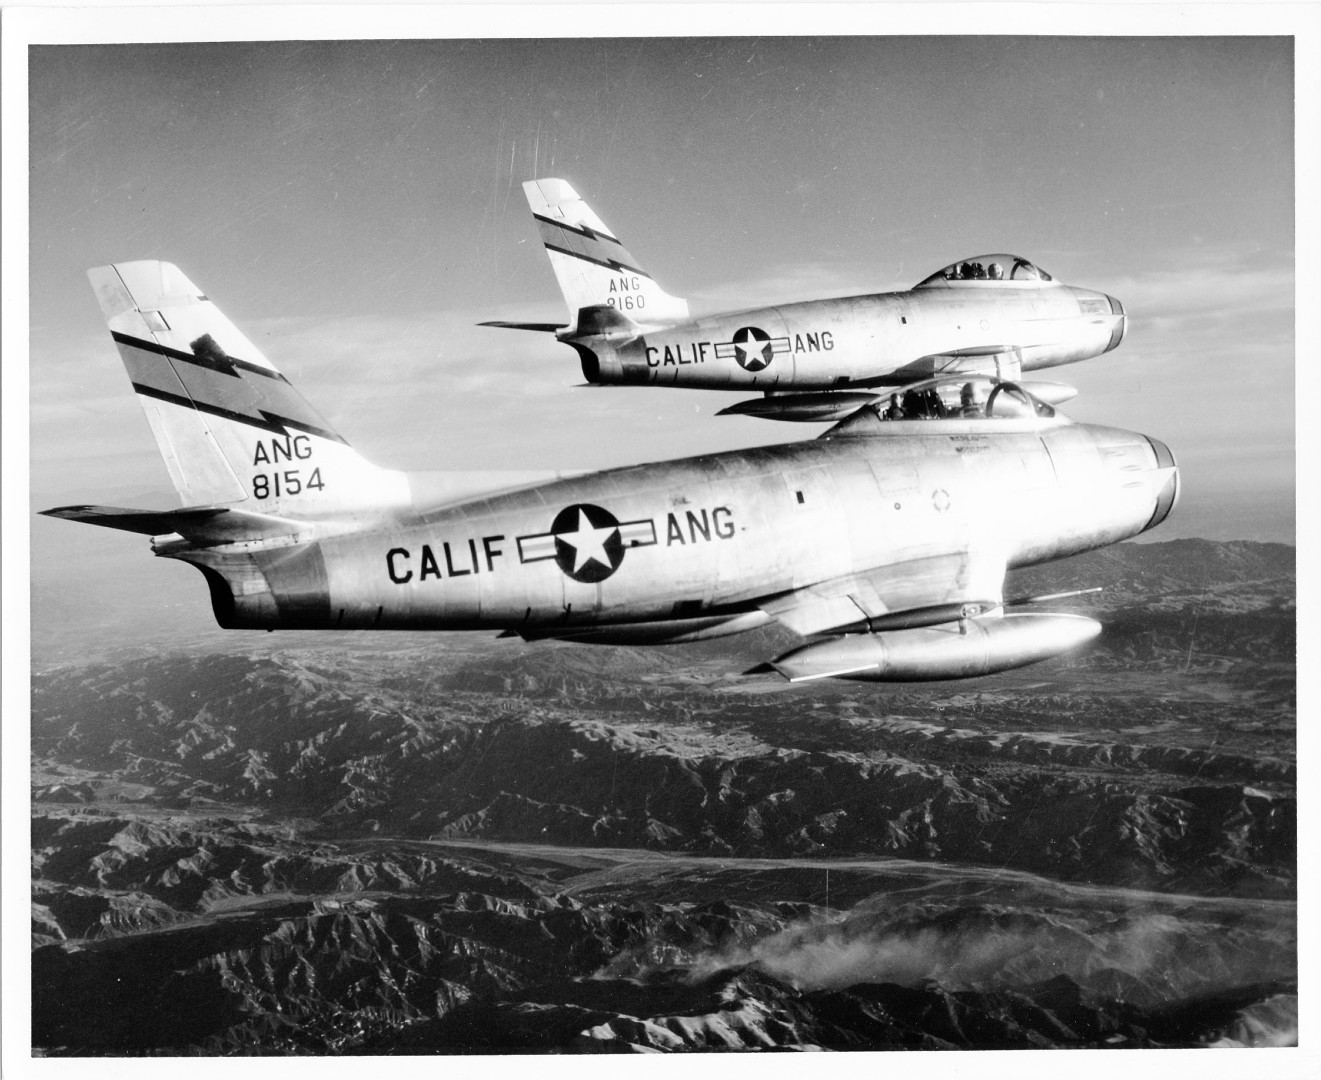 sn 48-154 and 48-160 115th FIS CALIF-ANG in midair collision with F-86.jpg